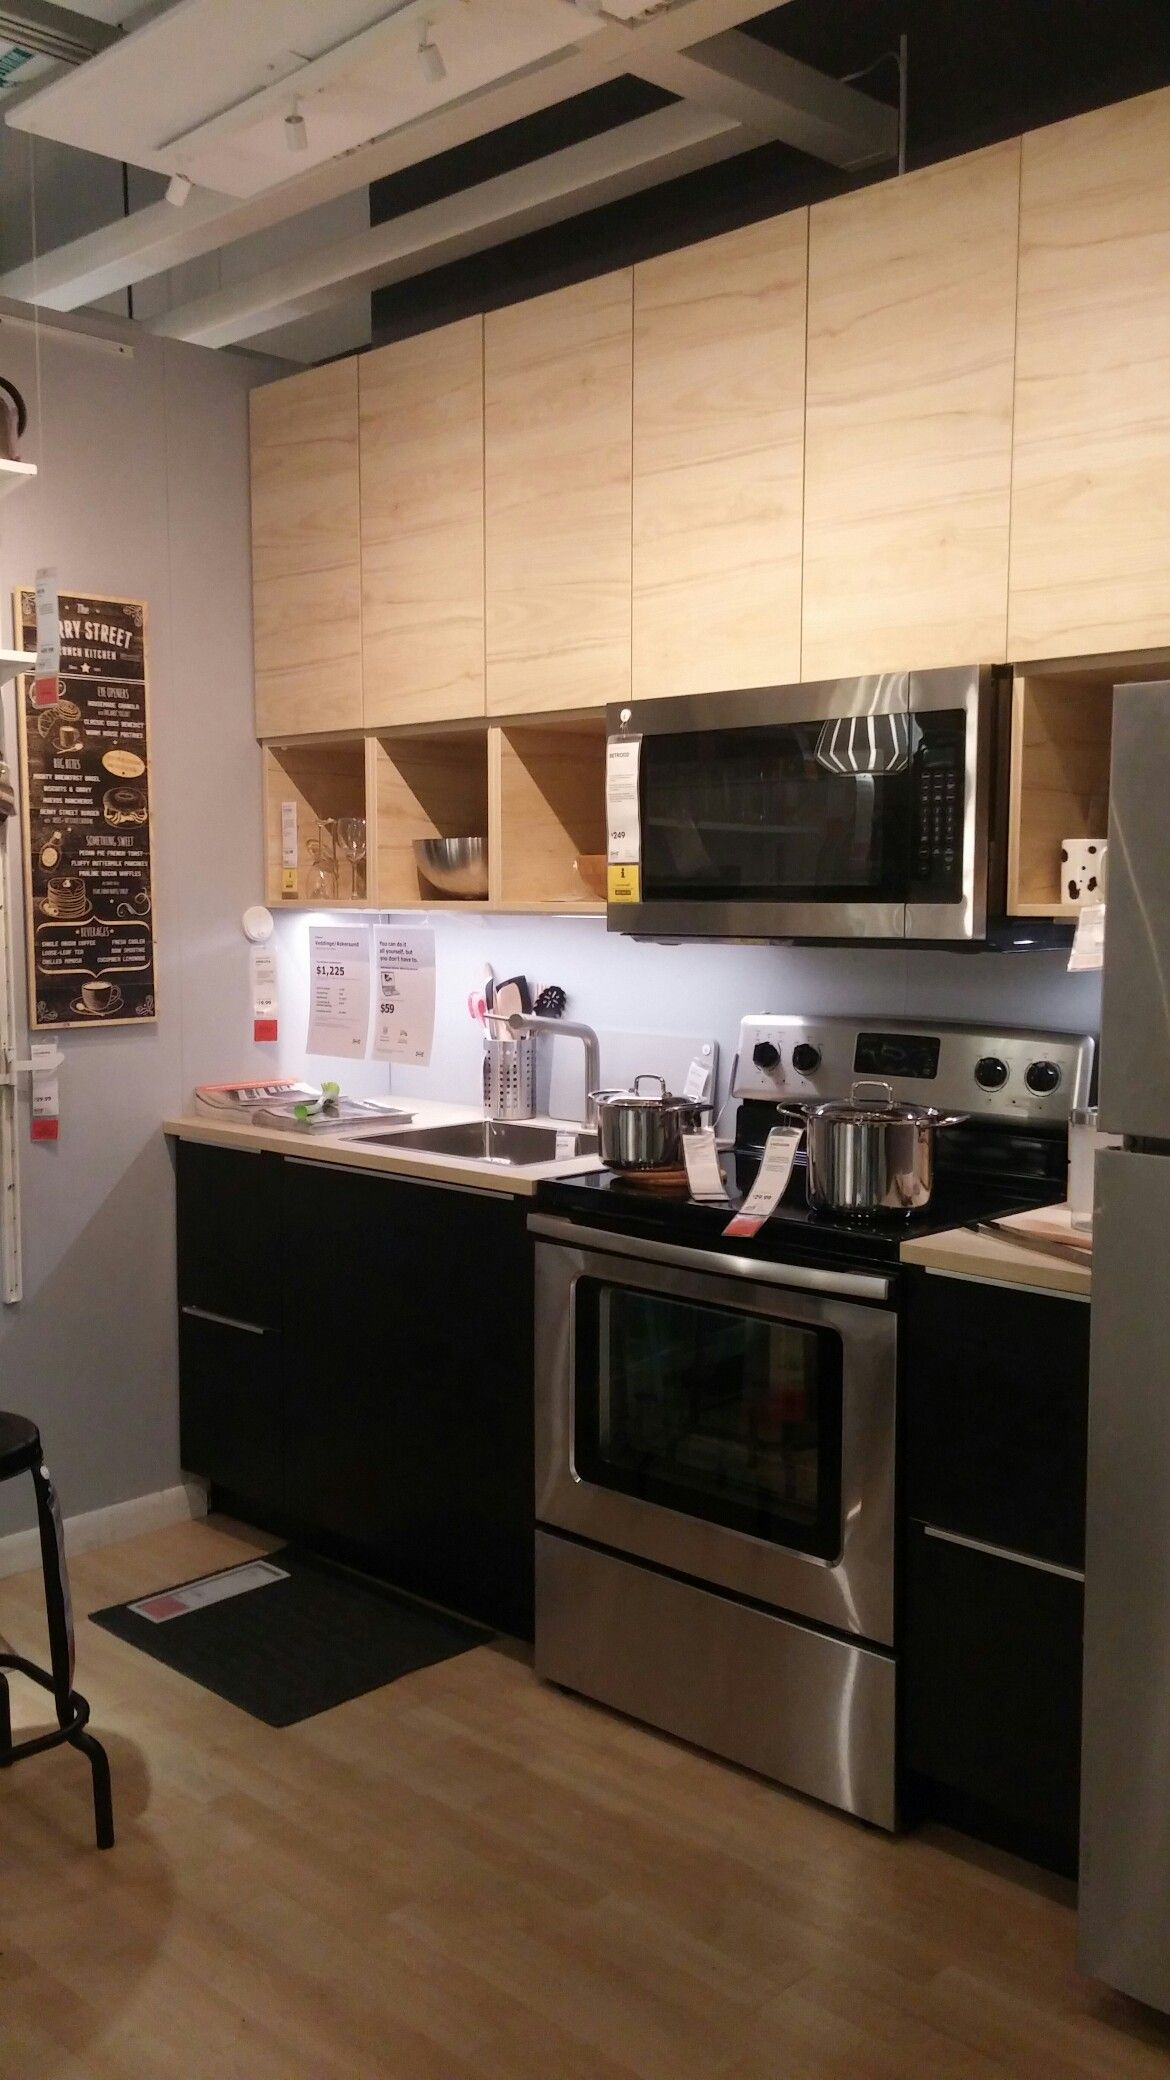 ikea askersund top tingsyrd bottom with ash countertop reno 2018 kitchen pinterest. Black Bedroom Furniture Sets. Home Design Ideas